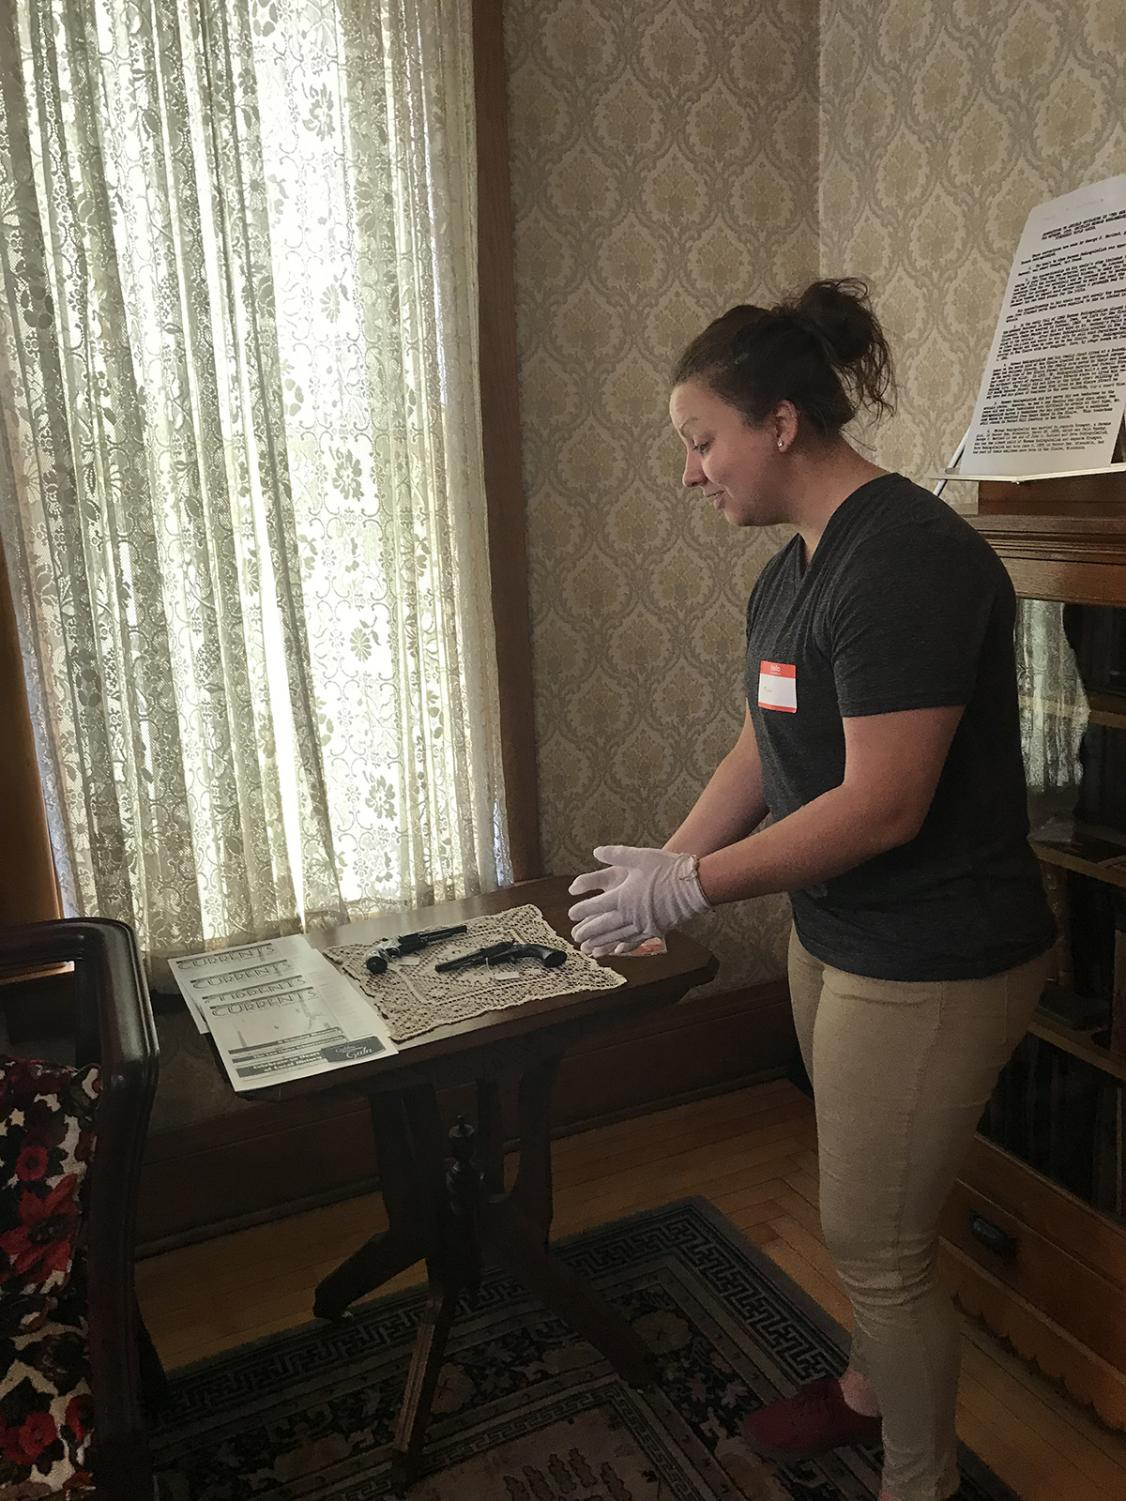 Madeline Jagodzinski, a student in John Mann's public history course, speaks about the Schlegelmilch guns during the tour inside the historic Schlegelmilch House.